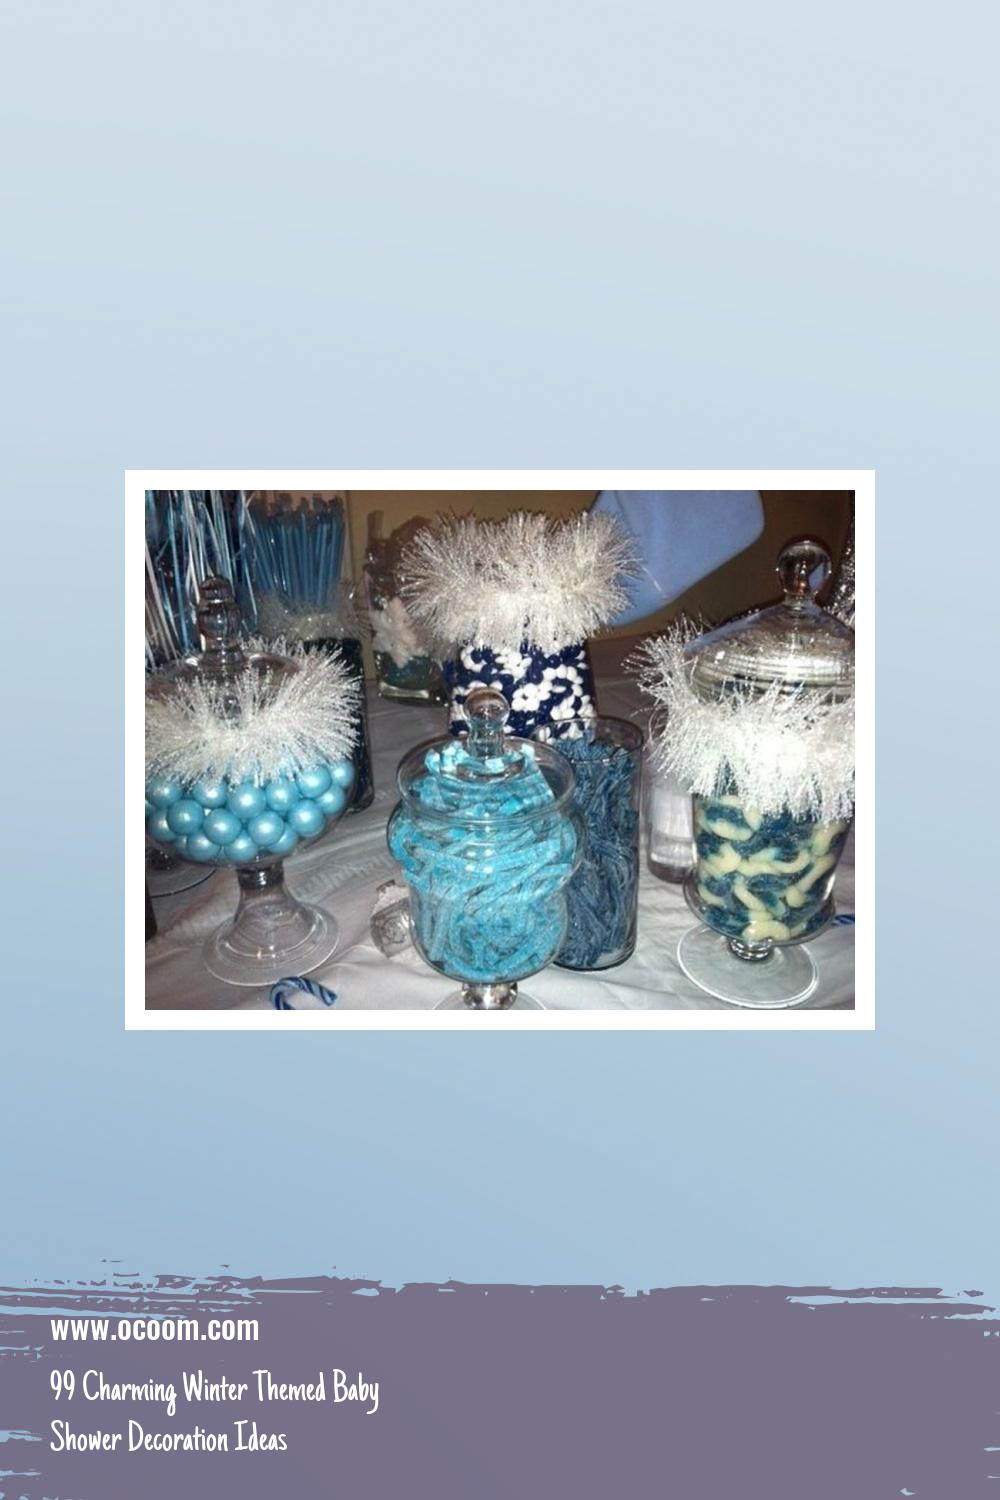 99 Charming Winter Themed Baby Shower Decoration Ideas 18